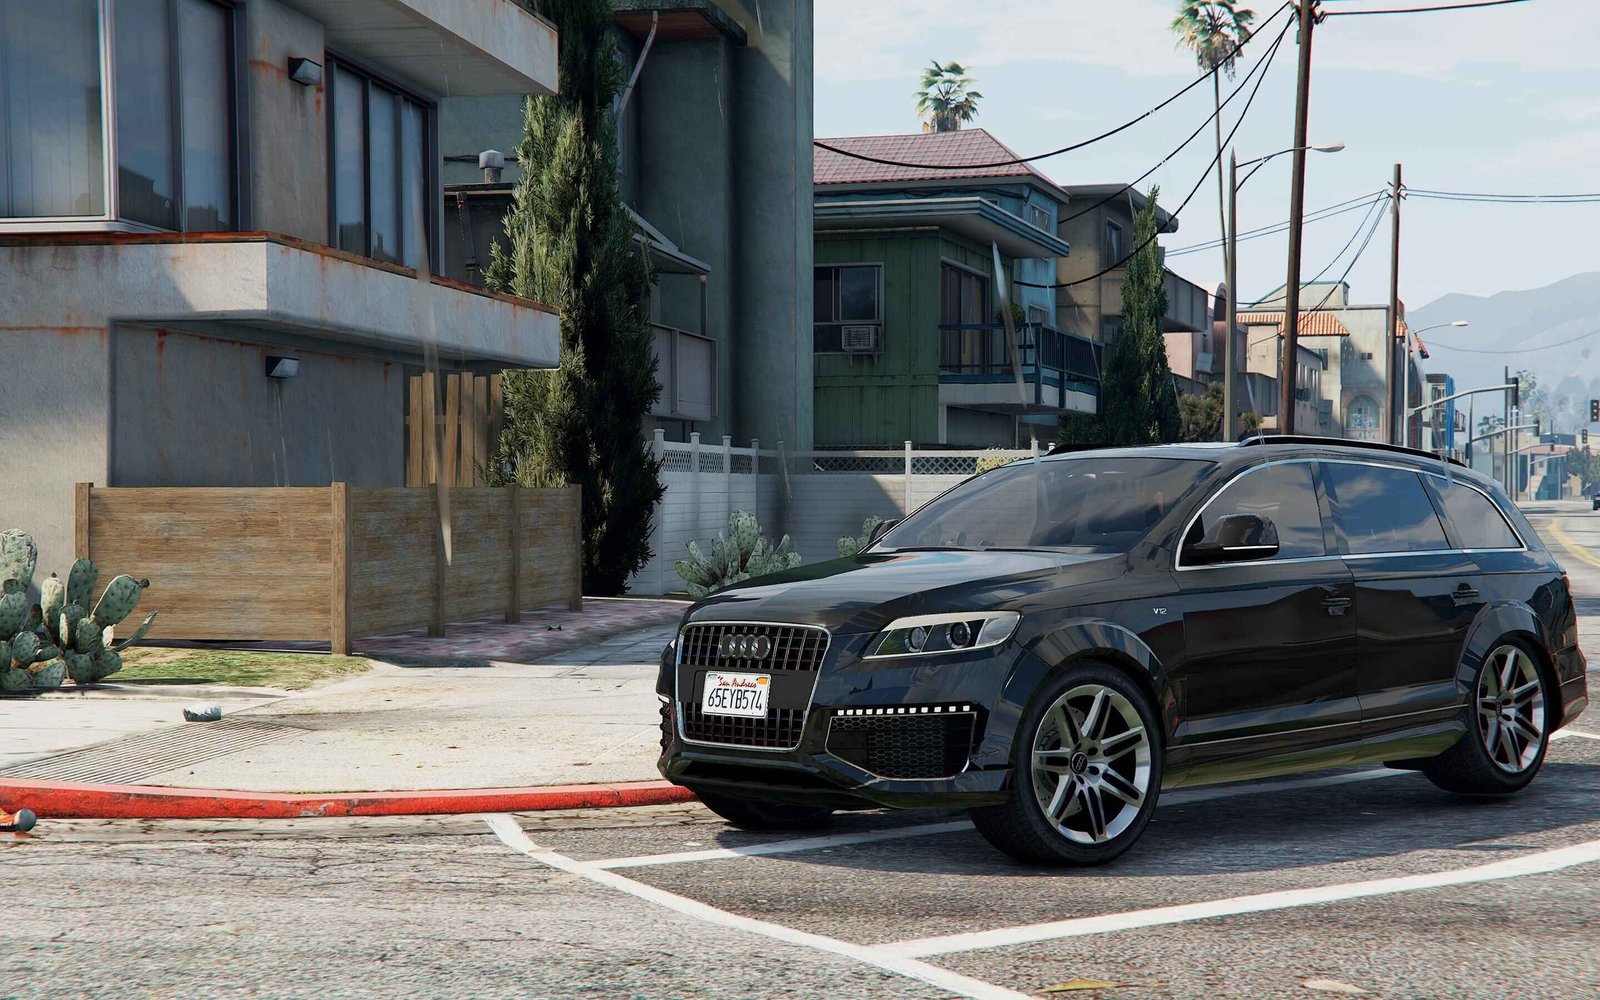 audi q7 2010 vehicules pour gta v sur gta modding. Black Bedroom Furniture Sets. Home Design Ideas